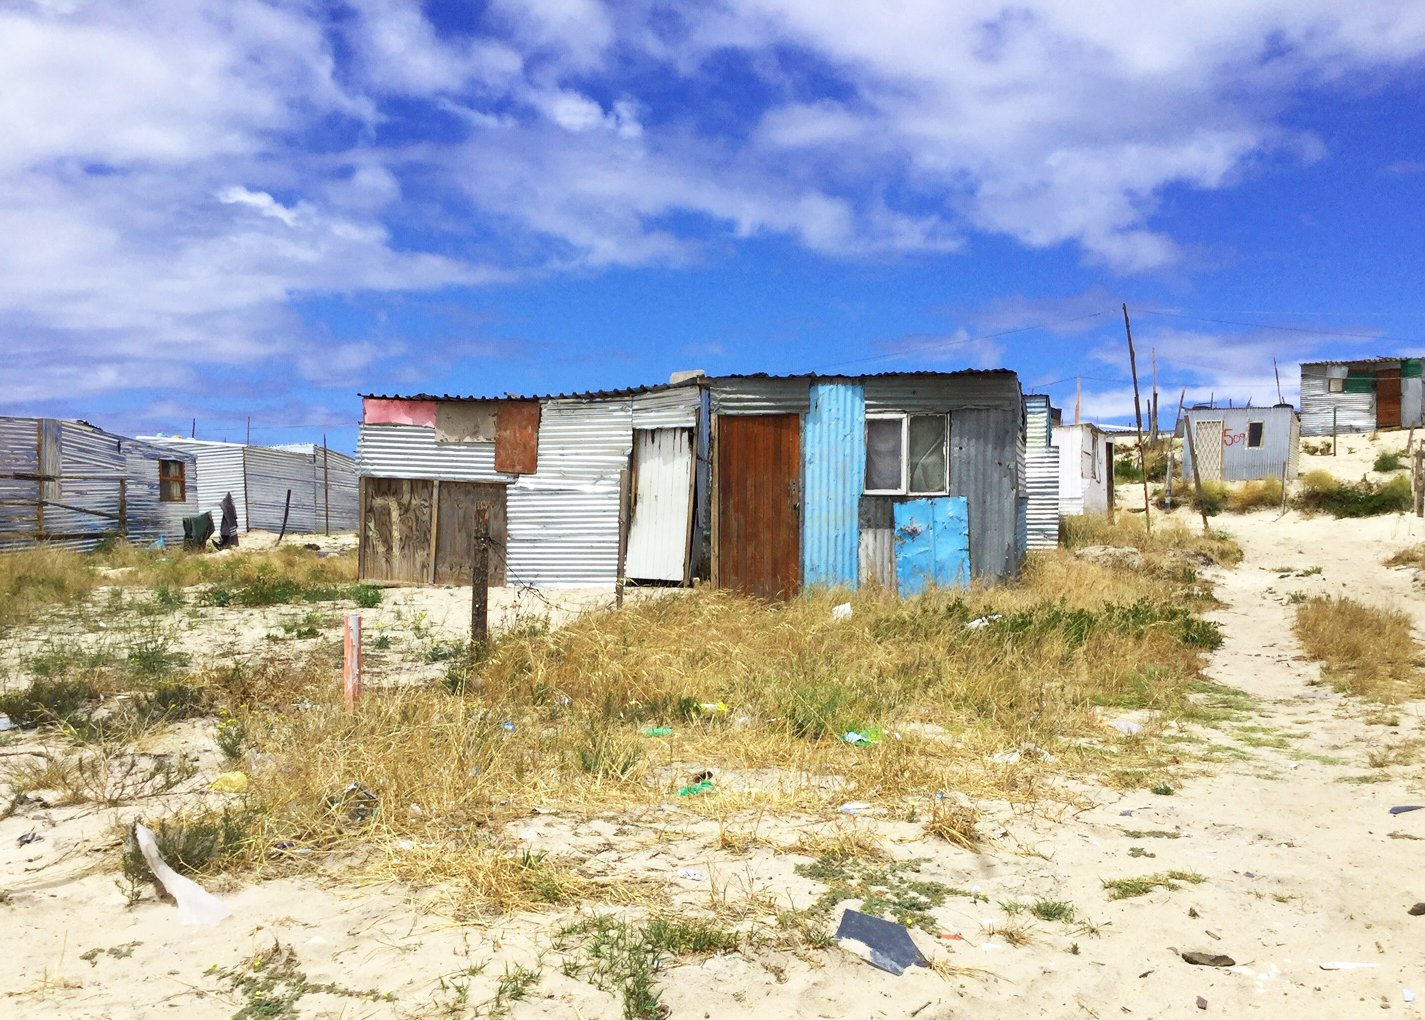 Building houses on sand in Khayelitsha, Cape Town, South Africa. Credit: Ivan Turok, Human Sciences Research Council.